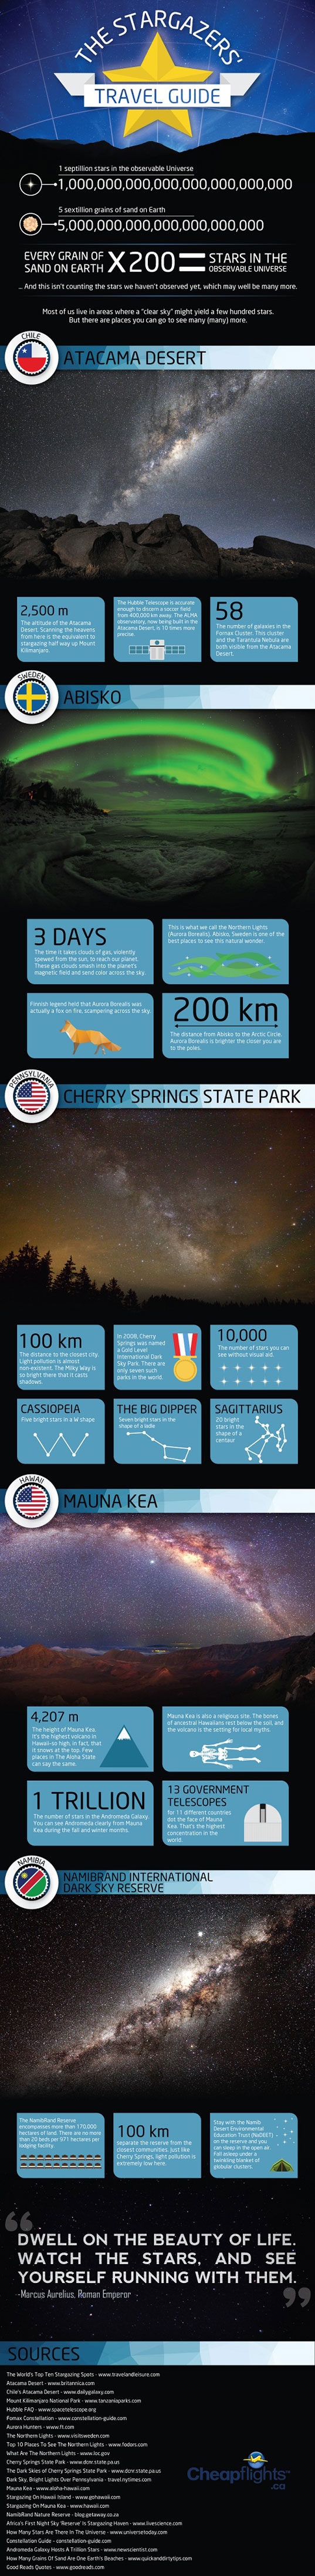 Stargazers, stargazers travel guide, light pollution, neomam infographic studios, infographic, stars, night sky, environment, natural wonders, star watching